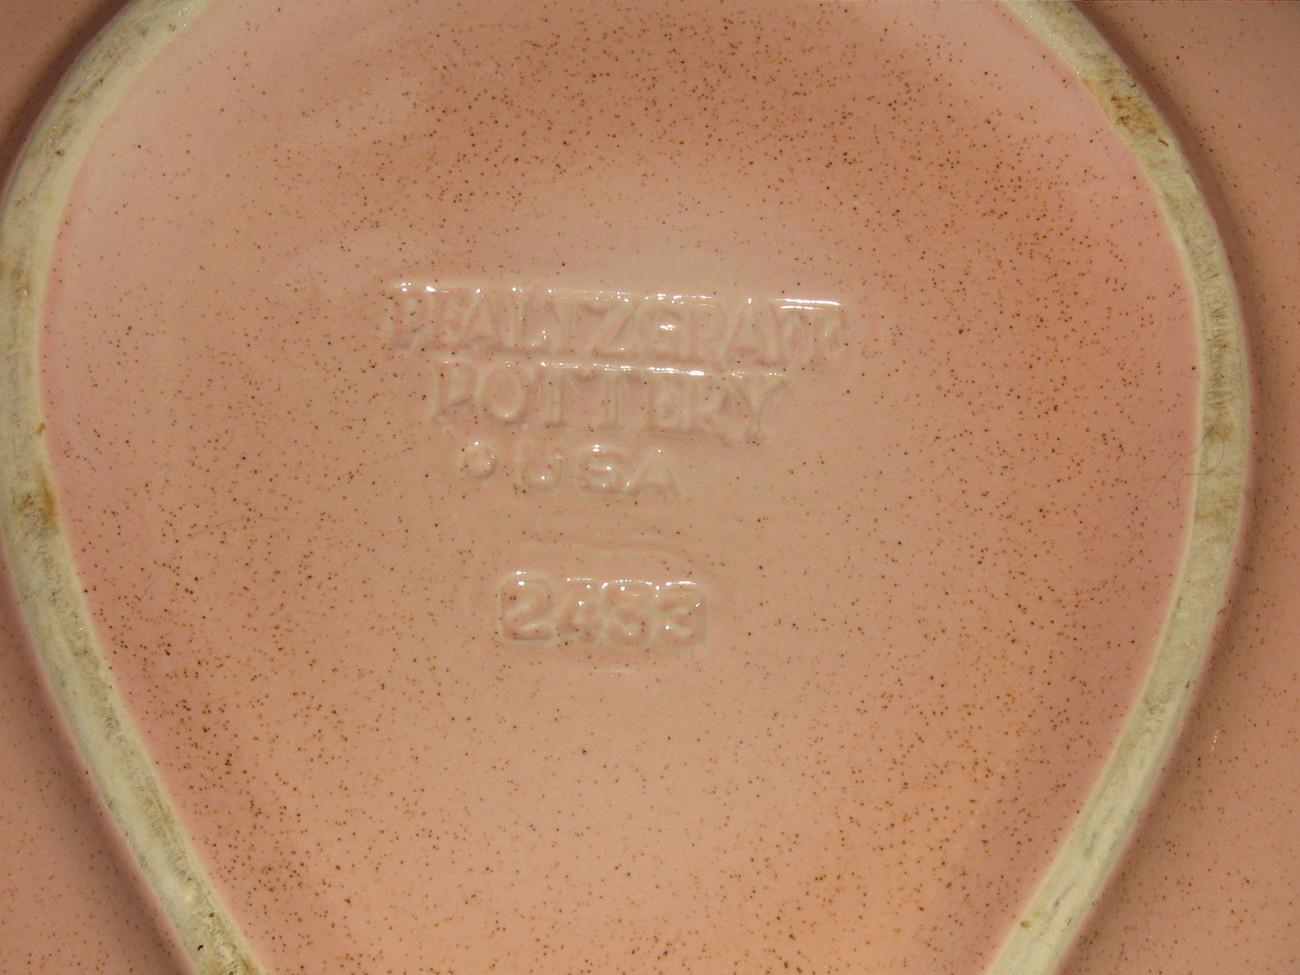 Pfaltzgraff Pottery Retro Pink pear shaped divided bowl - # 2433 Chip& Dip Bowl